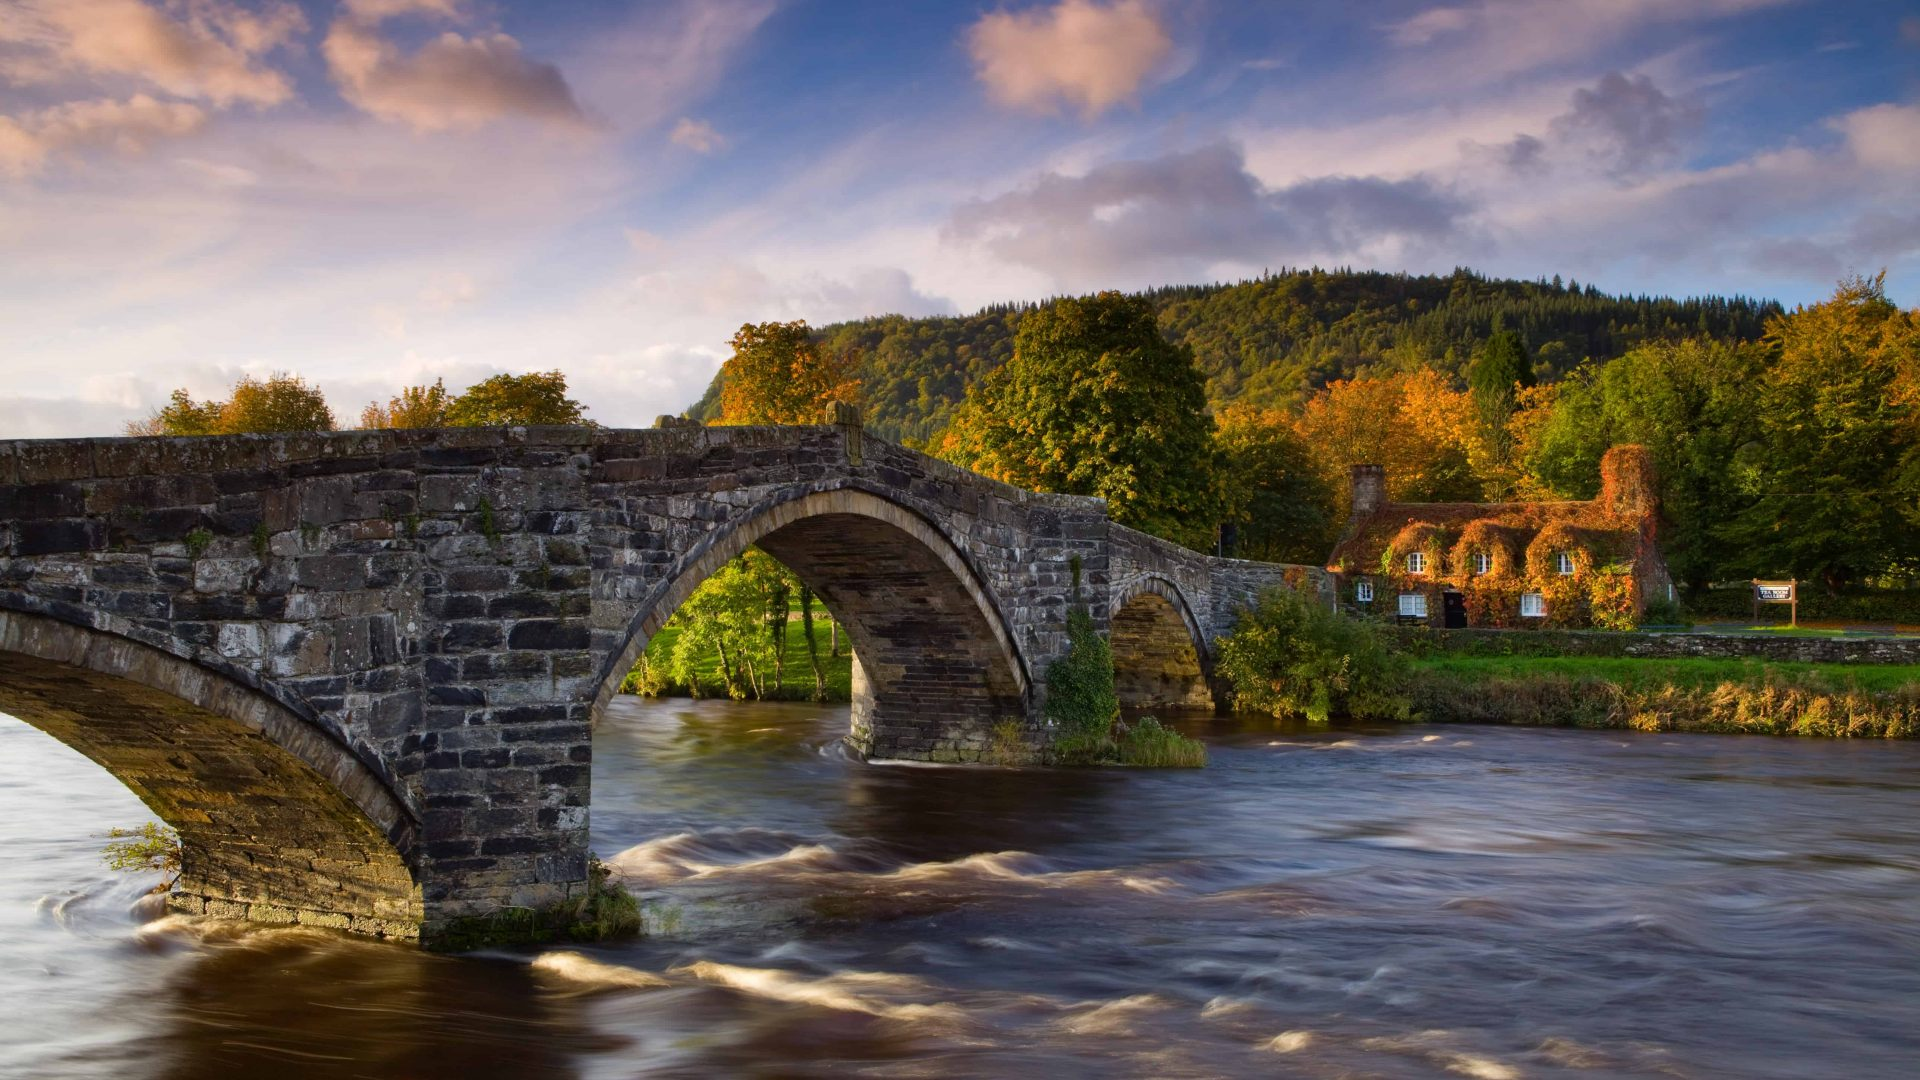 Tu Hwnt I'r Bont, a former courthouse, and the 17th century Pont Fawr stone bridge on the river Conwy. Sunset, dusk.